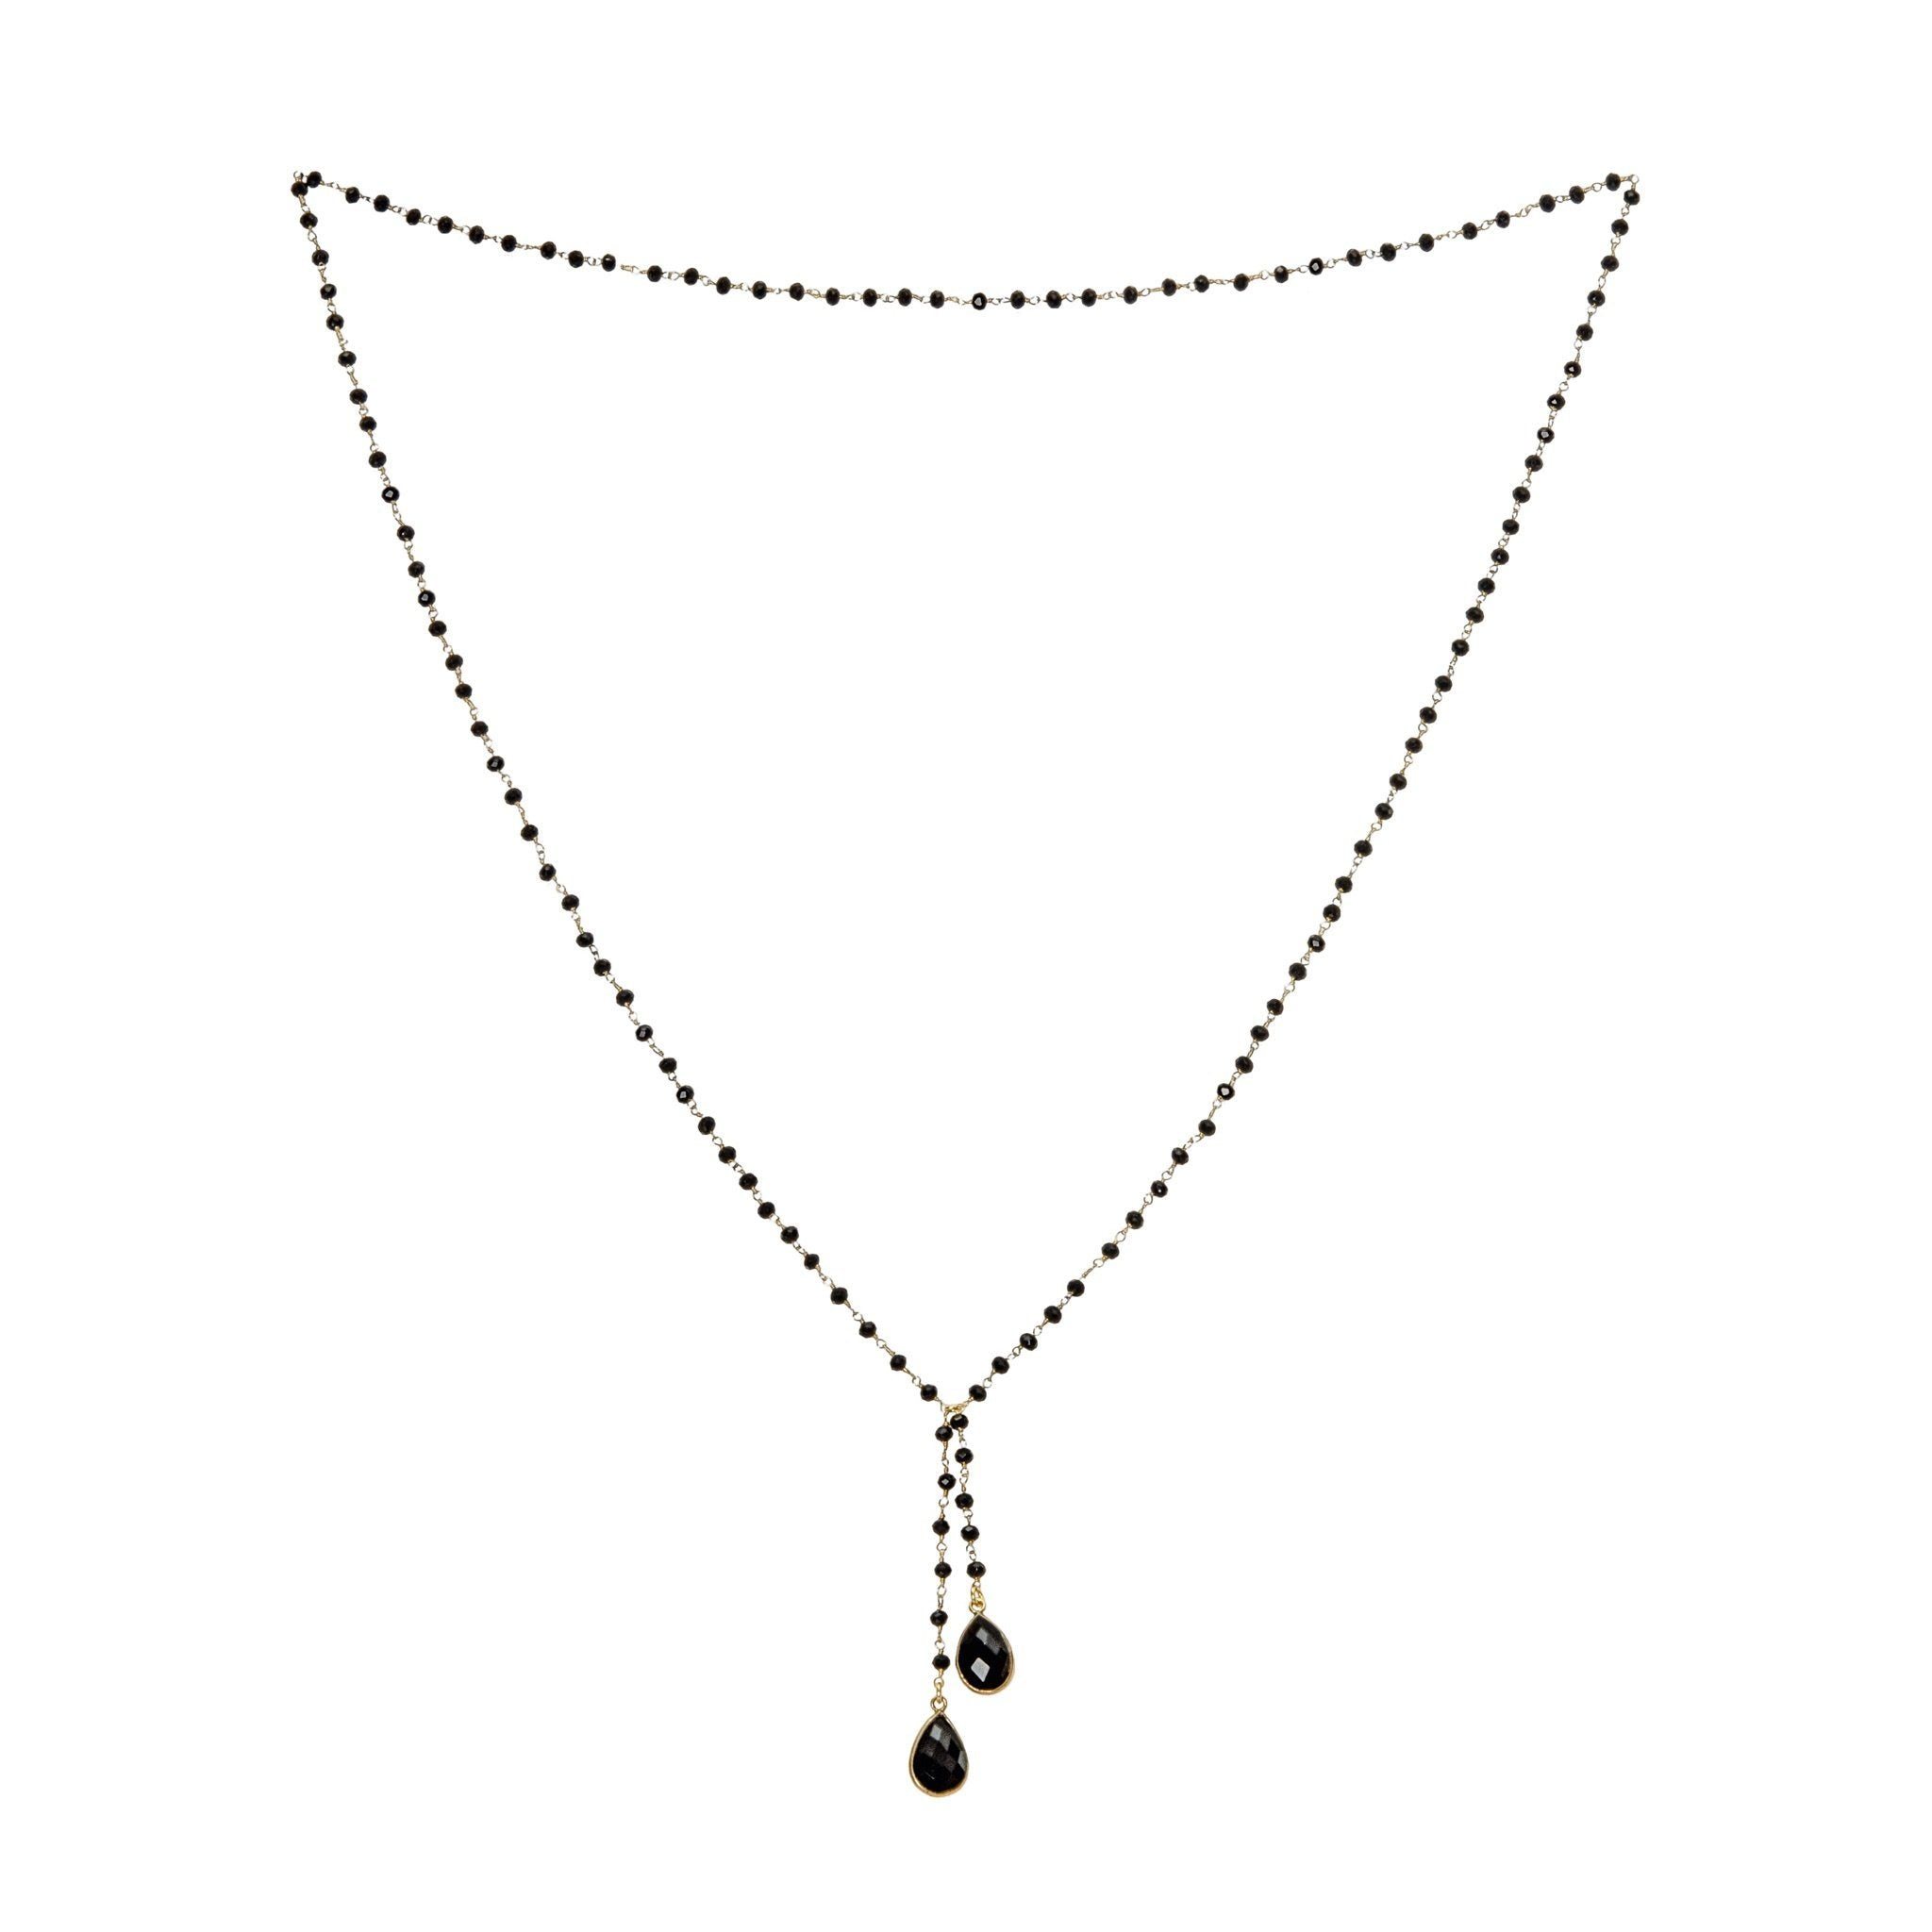 TOKA black onyx necklace with black onyx drops - MadamSiam